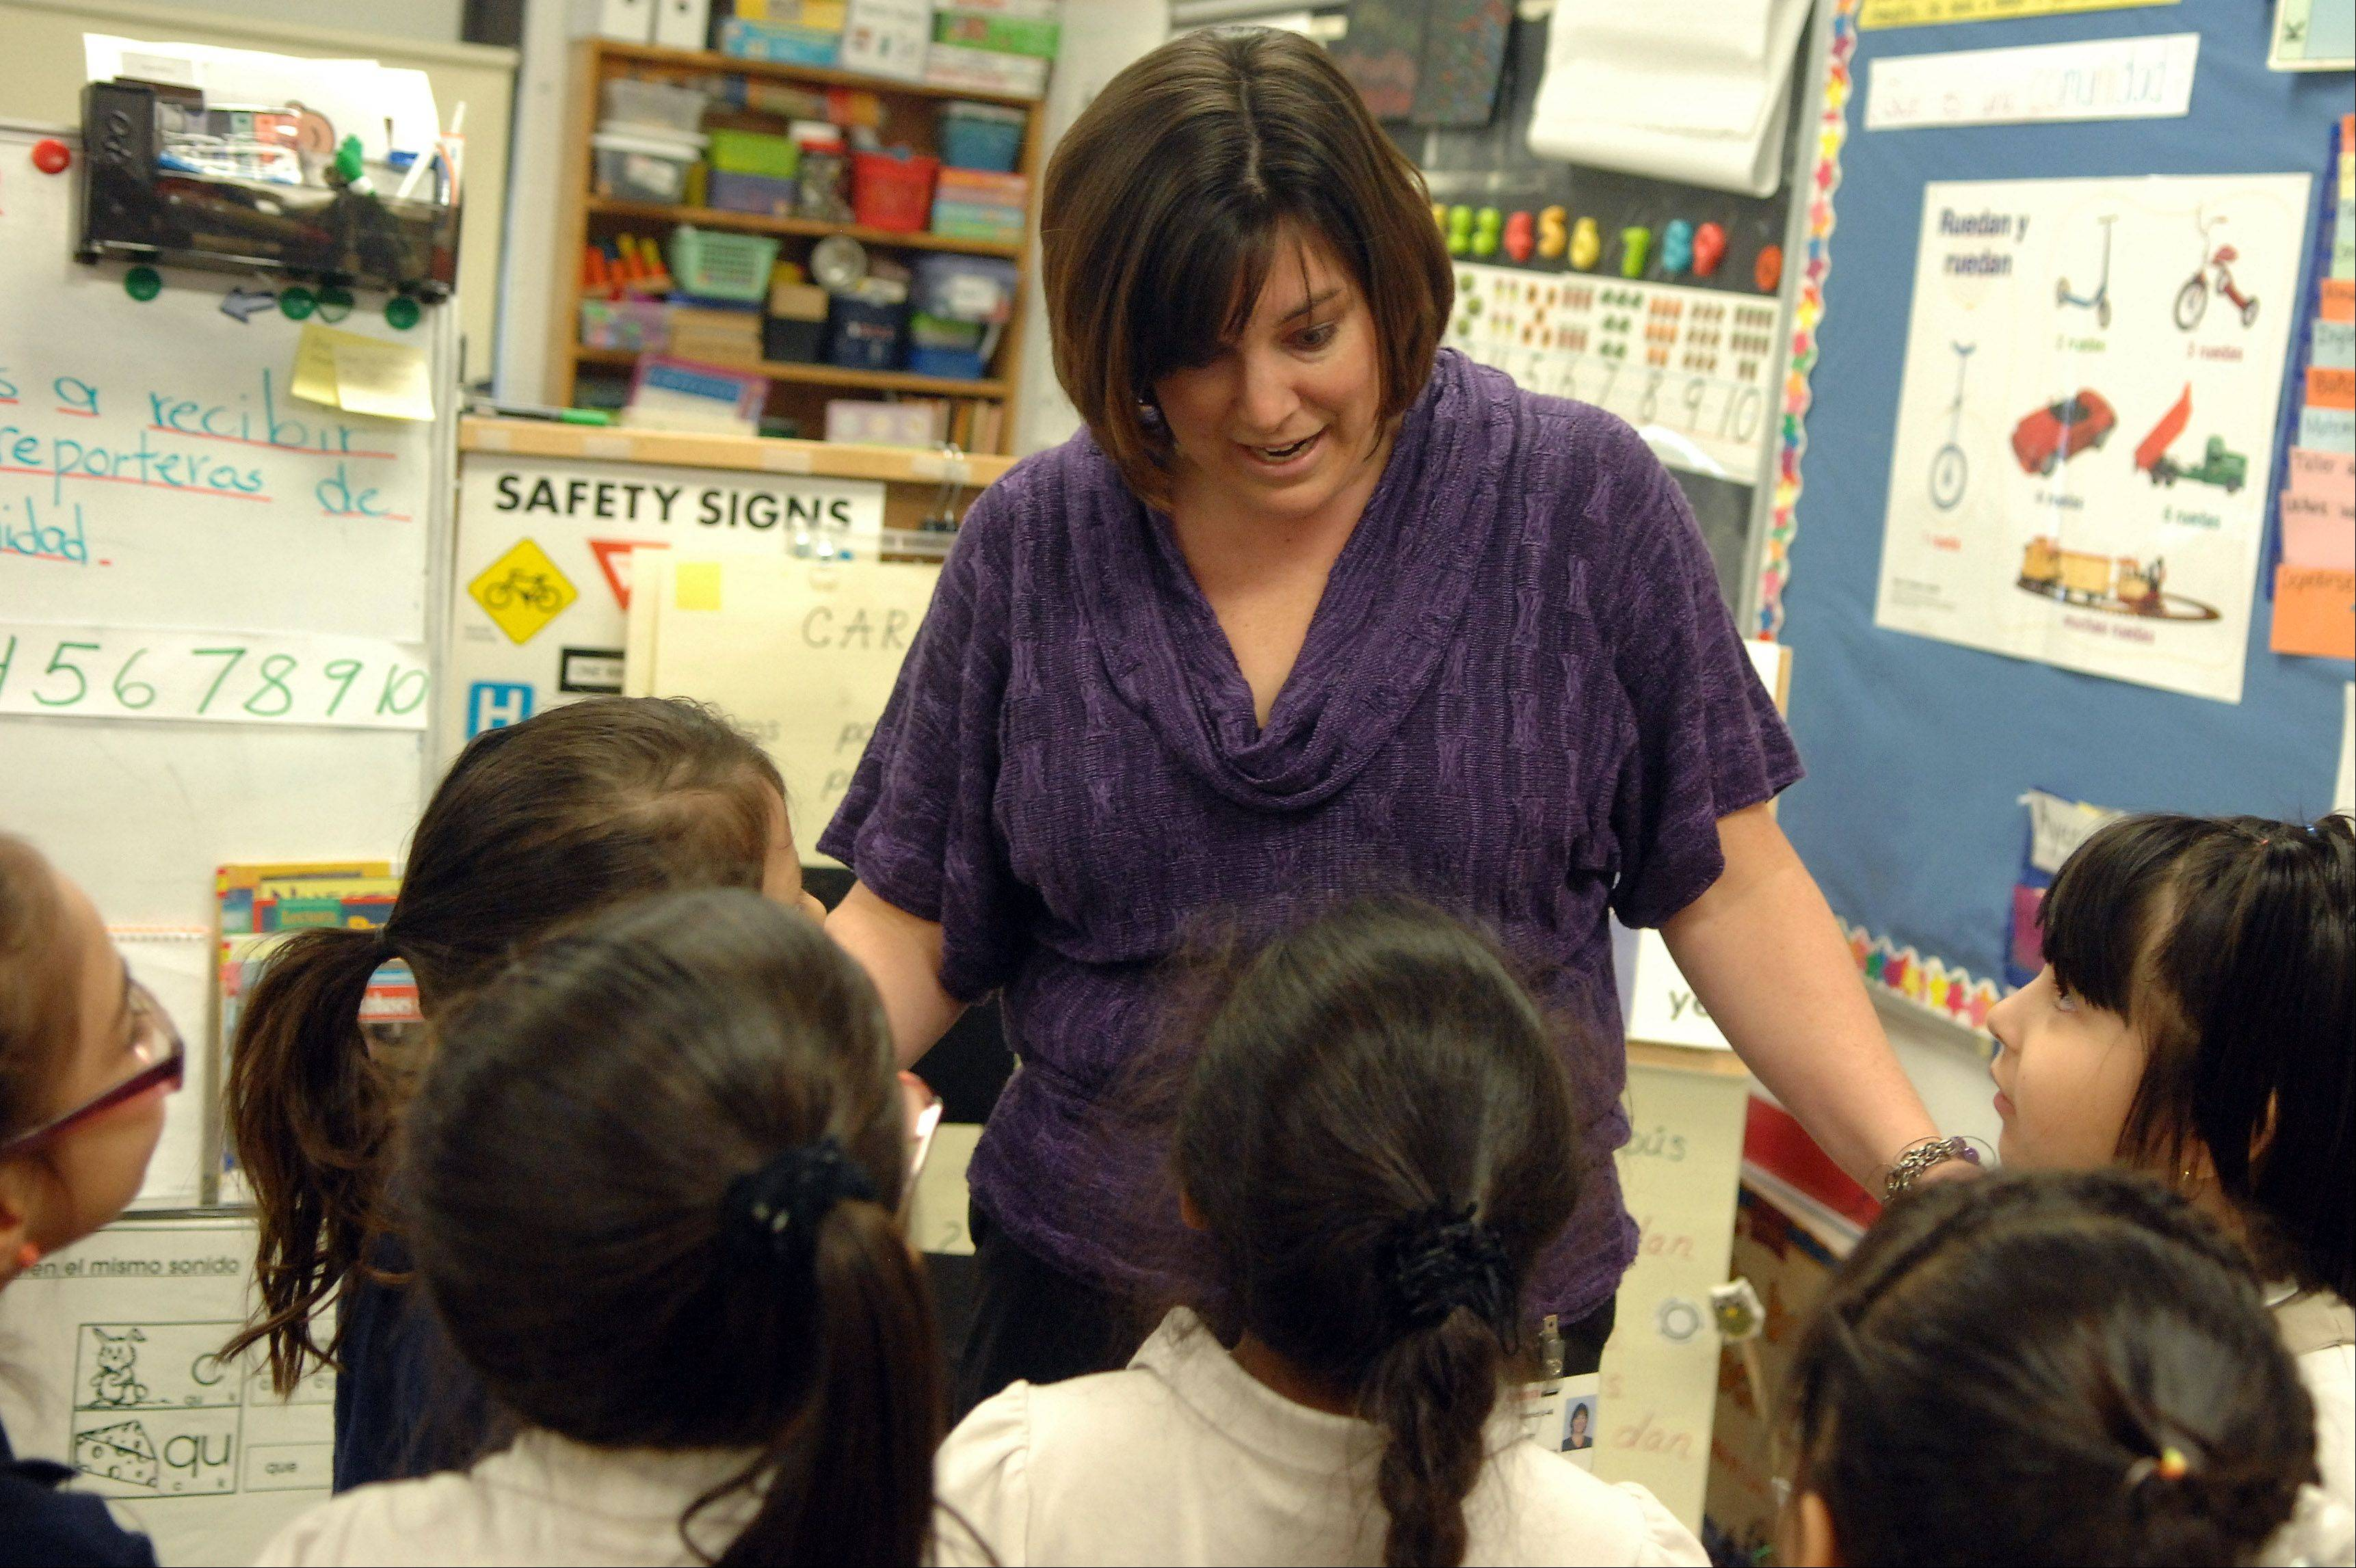 Garfield Elementary School kindergarten teacher Angie Gallegos gets ready to dismiss her class to lunch. Gallegos teaches in a dual language, full-day kindergarten program at Elgin Area School District U-46 and is one of 25 U-46 teachers involved in the pilot year for a new assessment of kindergartners.